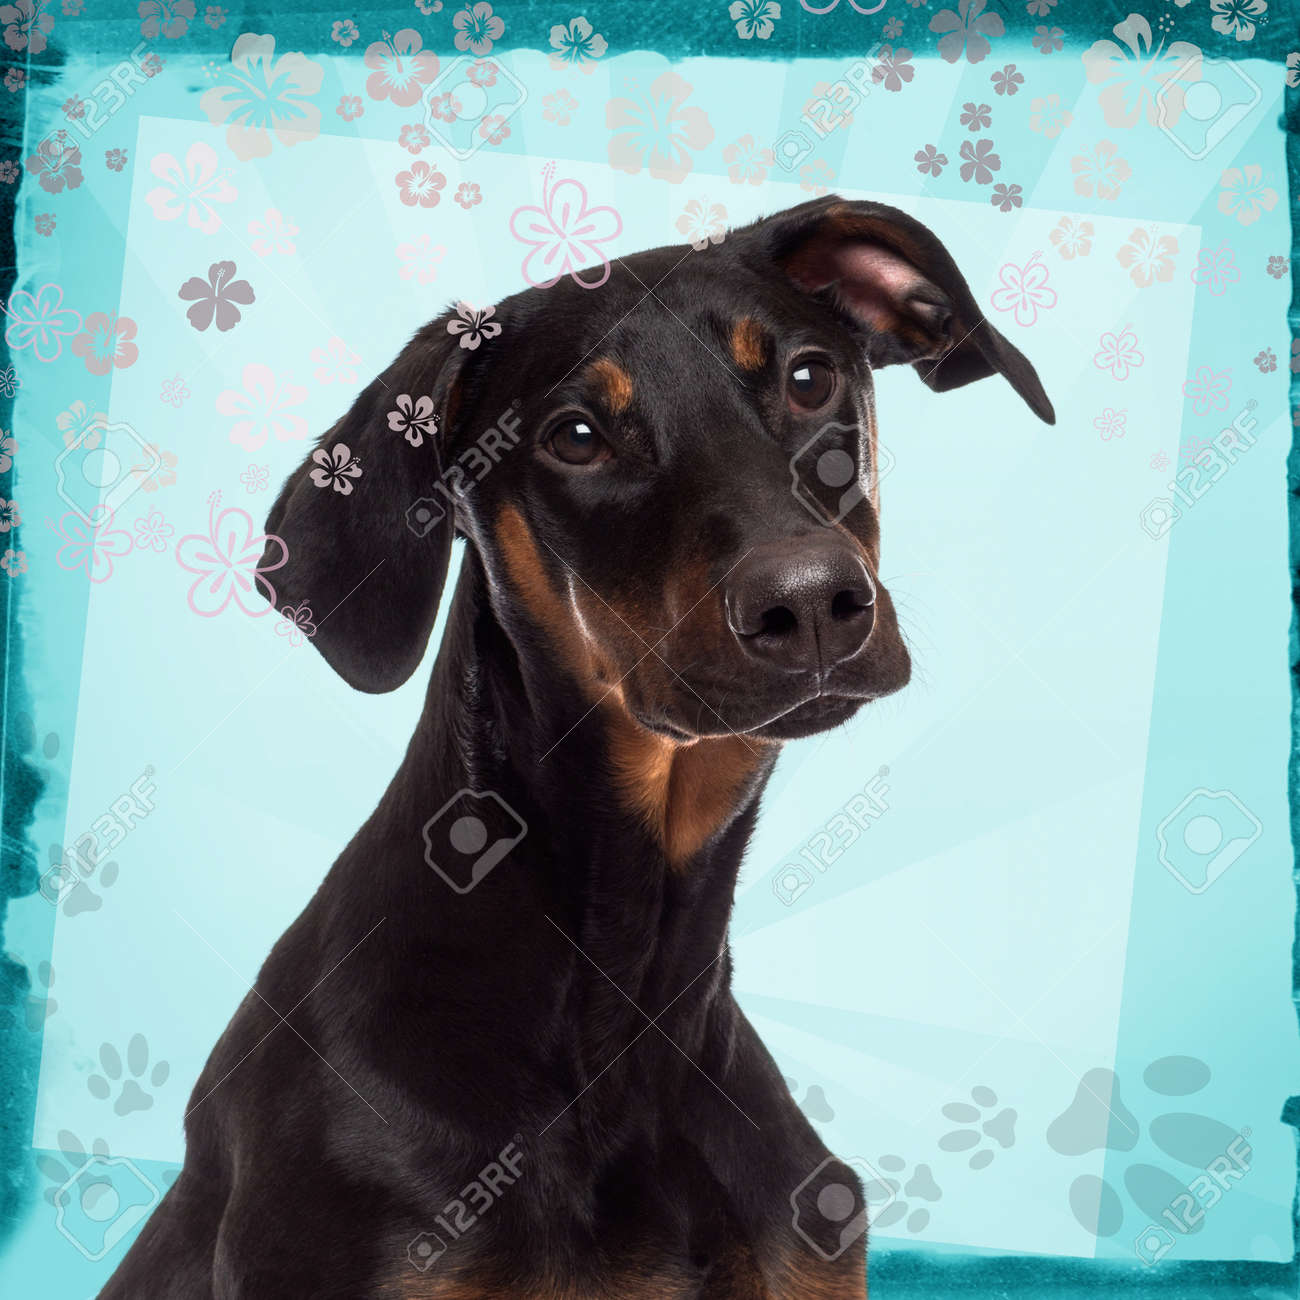 Close Up Of A Doberman Pinscher Puppy On A Blue Designed Background Stock Photo Picture And Royalty Free Image Image 26012412